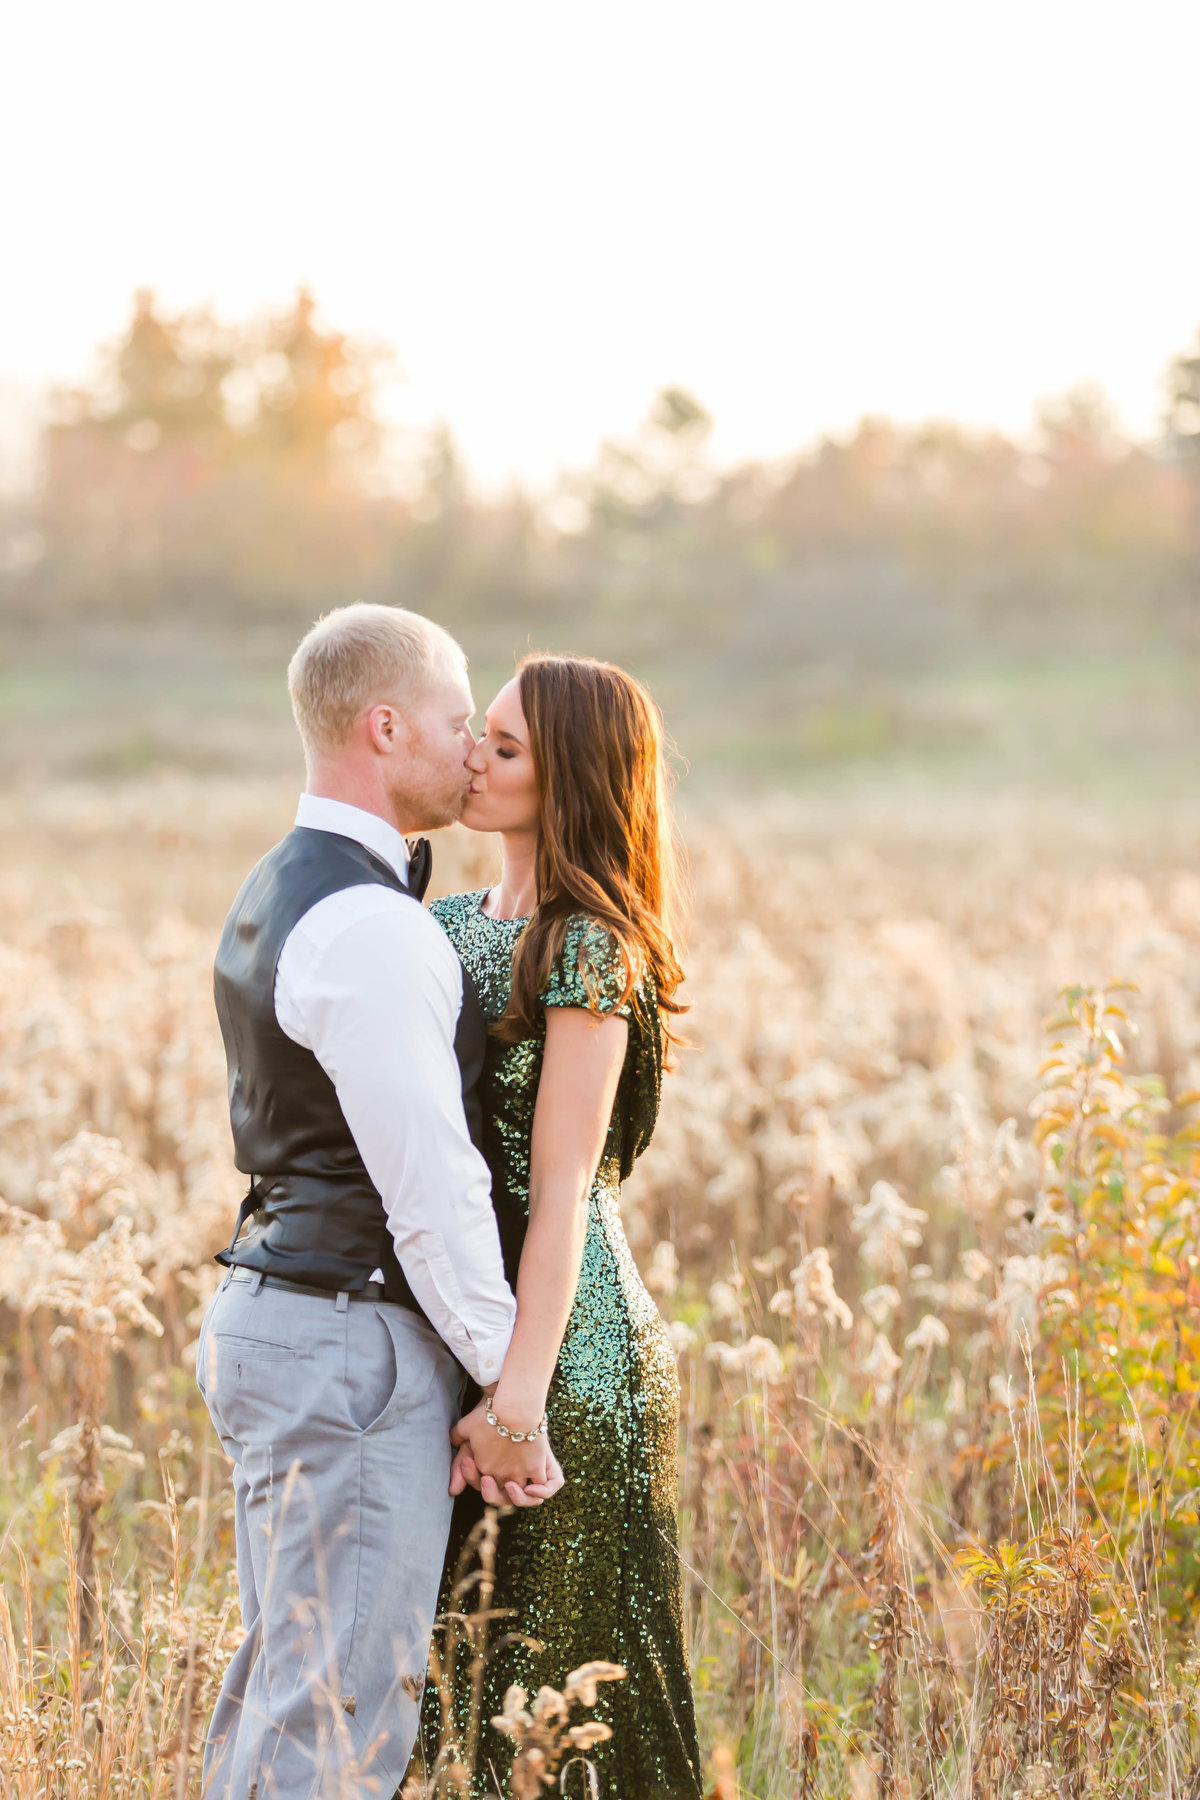 photographer akron ohio, sequin green dress engagement photos